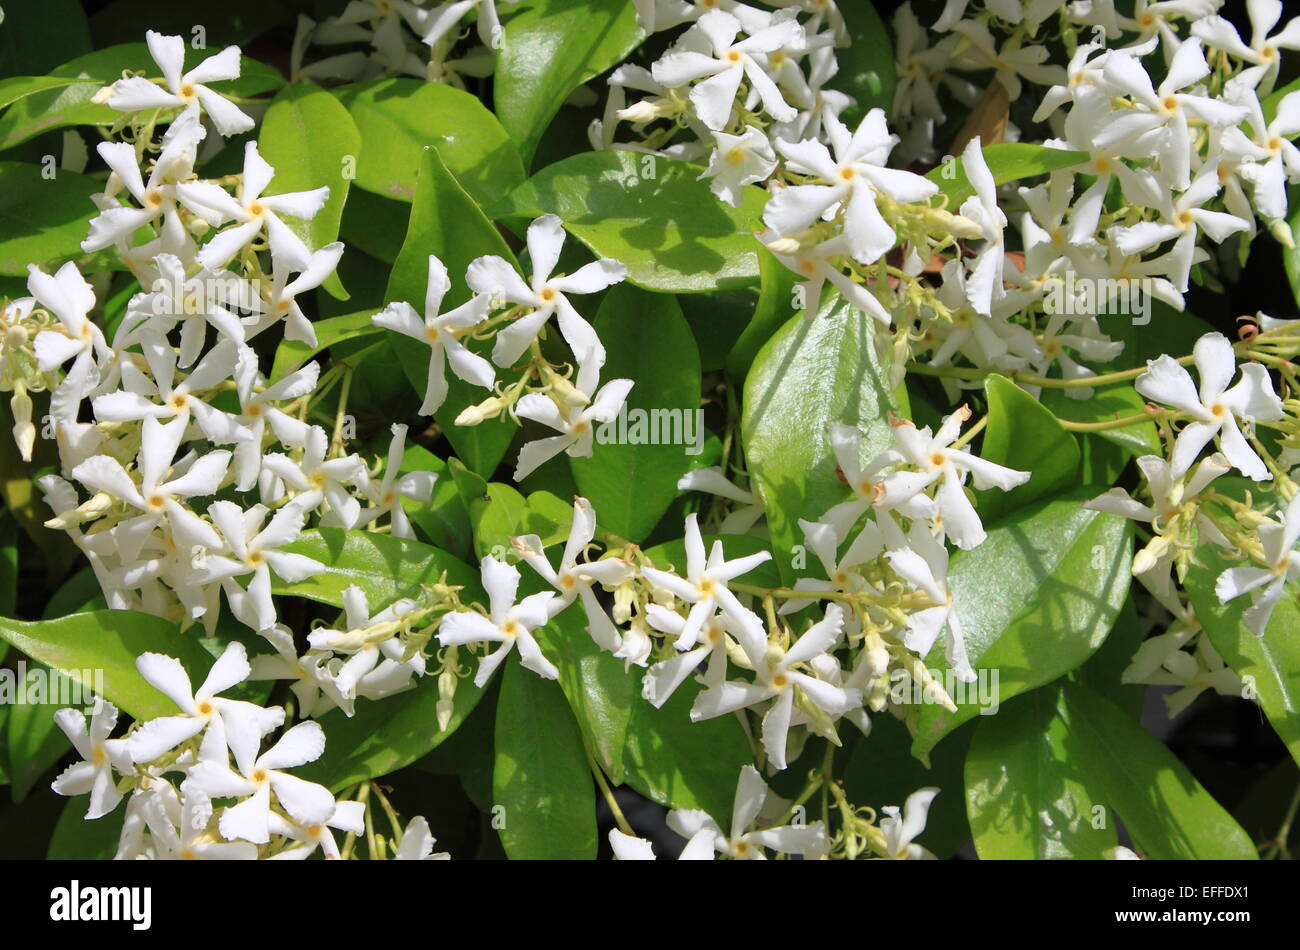 Closeup View Of A Bush Of Jasmine Flowers Stock Photo 78401513 Alamy